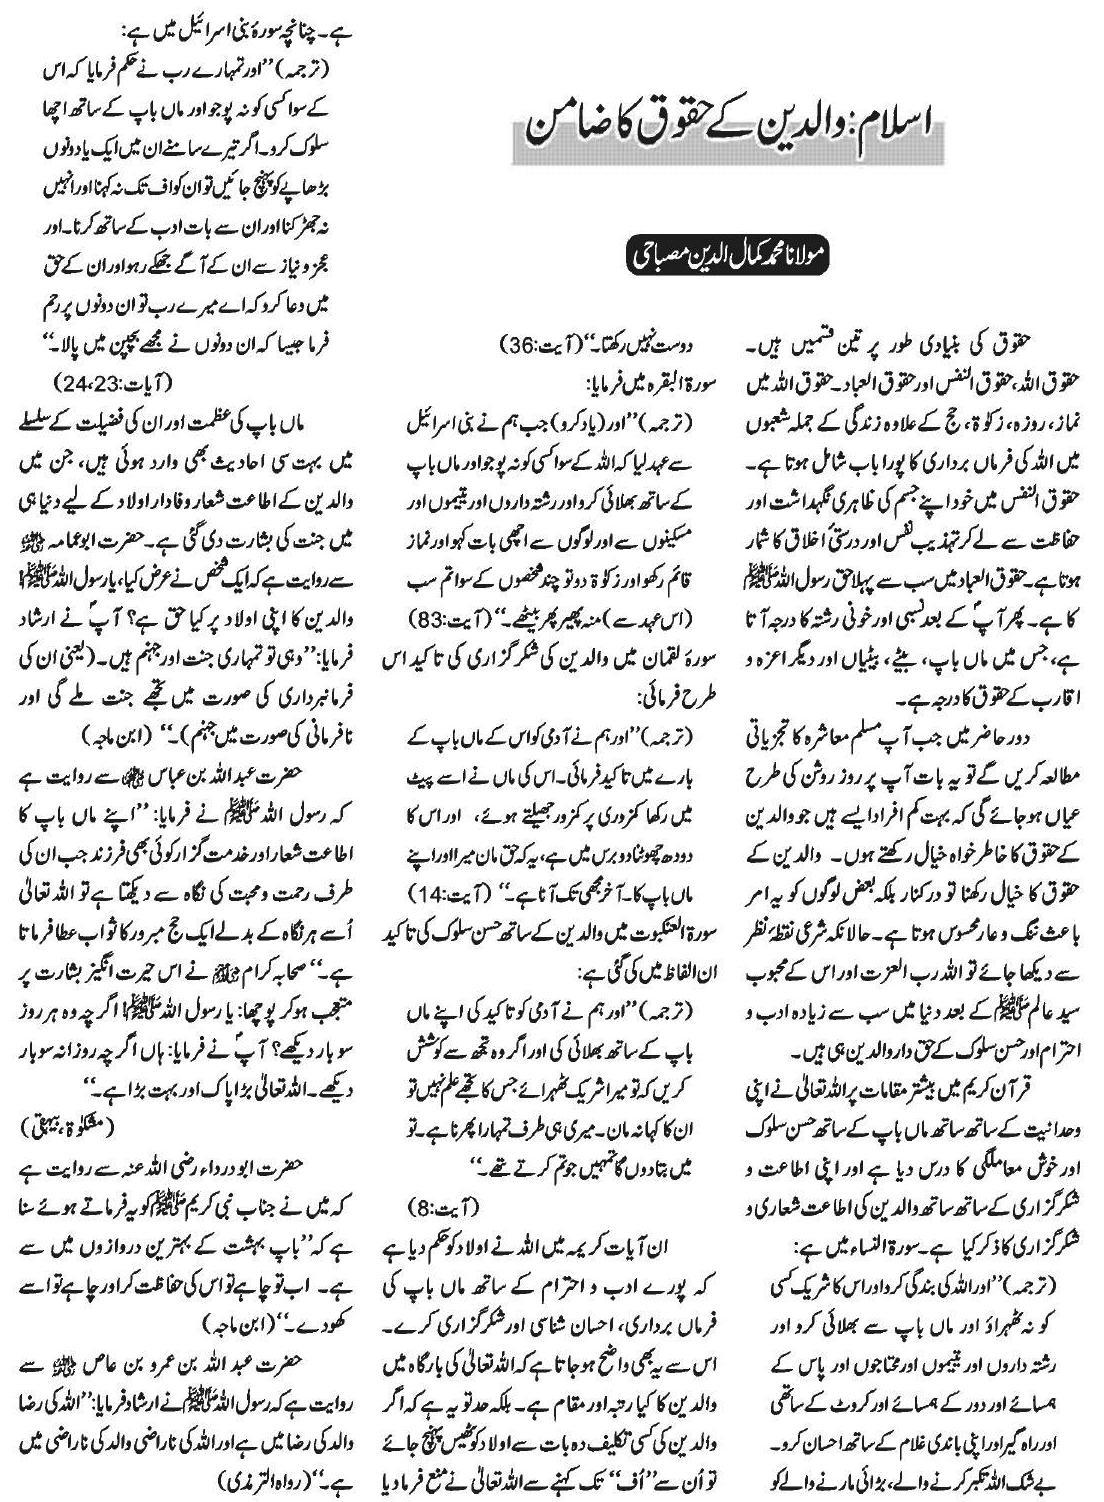 Easy essay on war against terrorism in pakistan